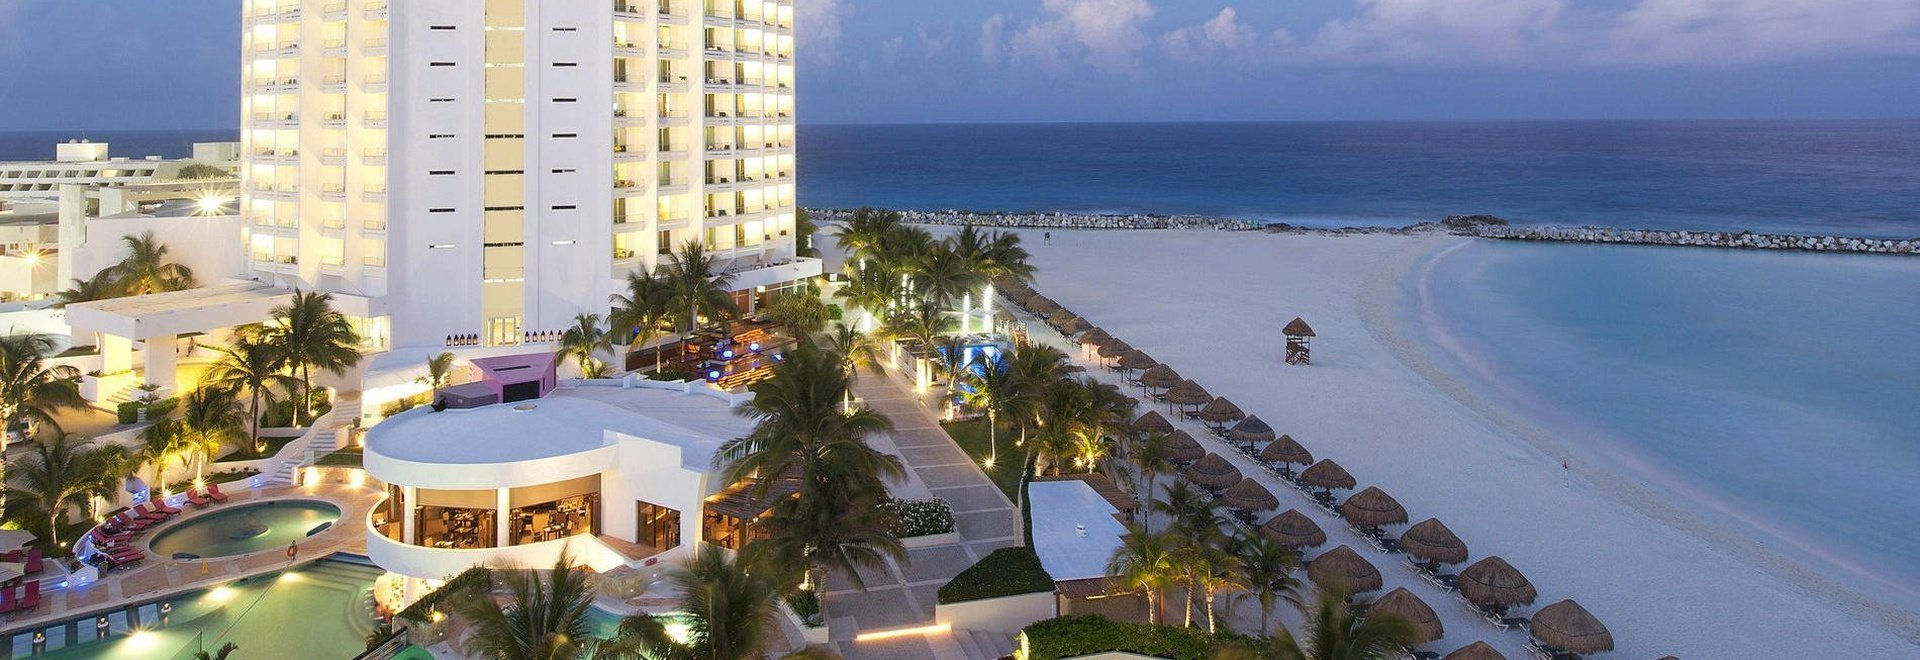 Reflect Cancún Resort & Spa Hotel -